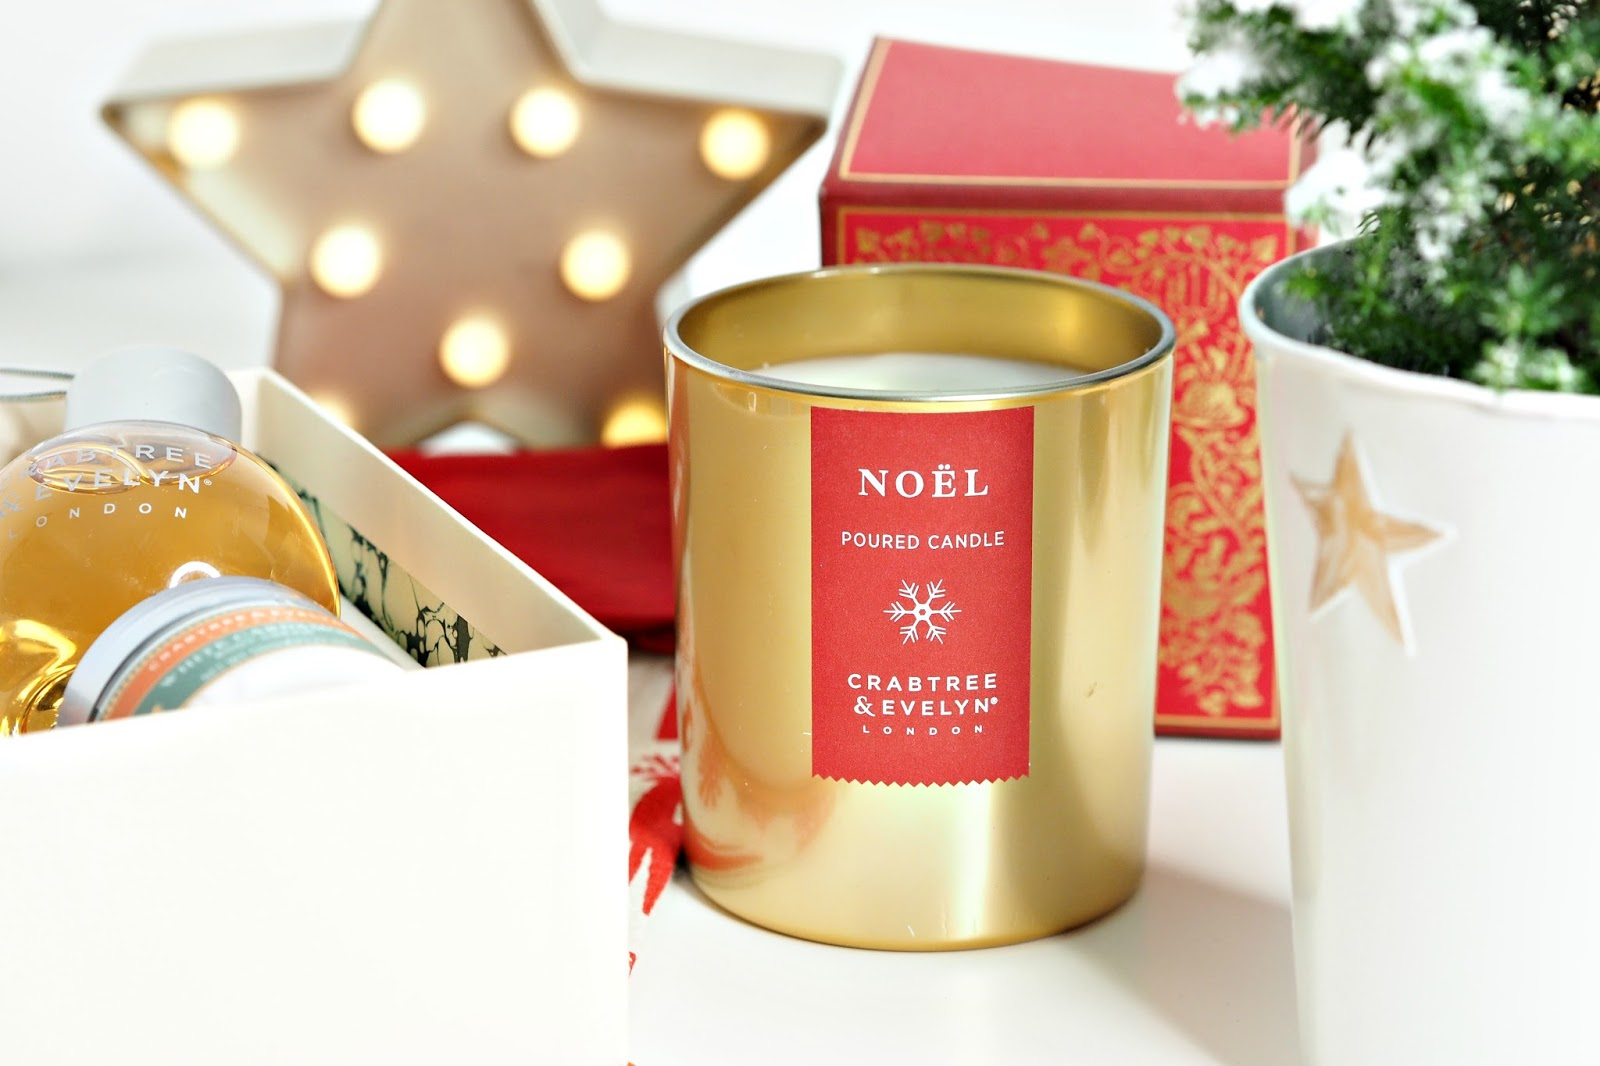 Crabtree & Evelyn Noel Poured Christmas Candle 200g